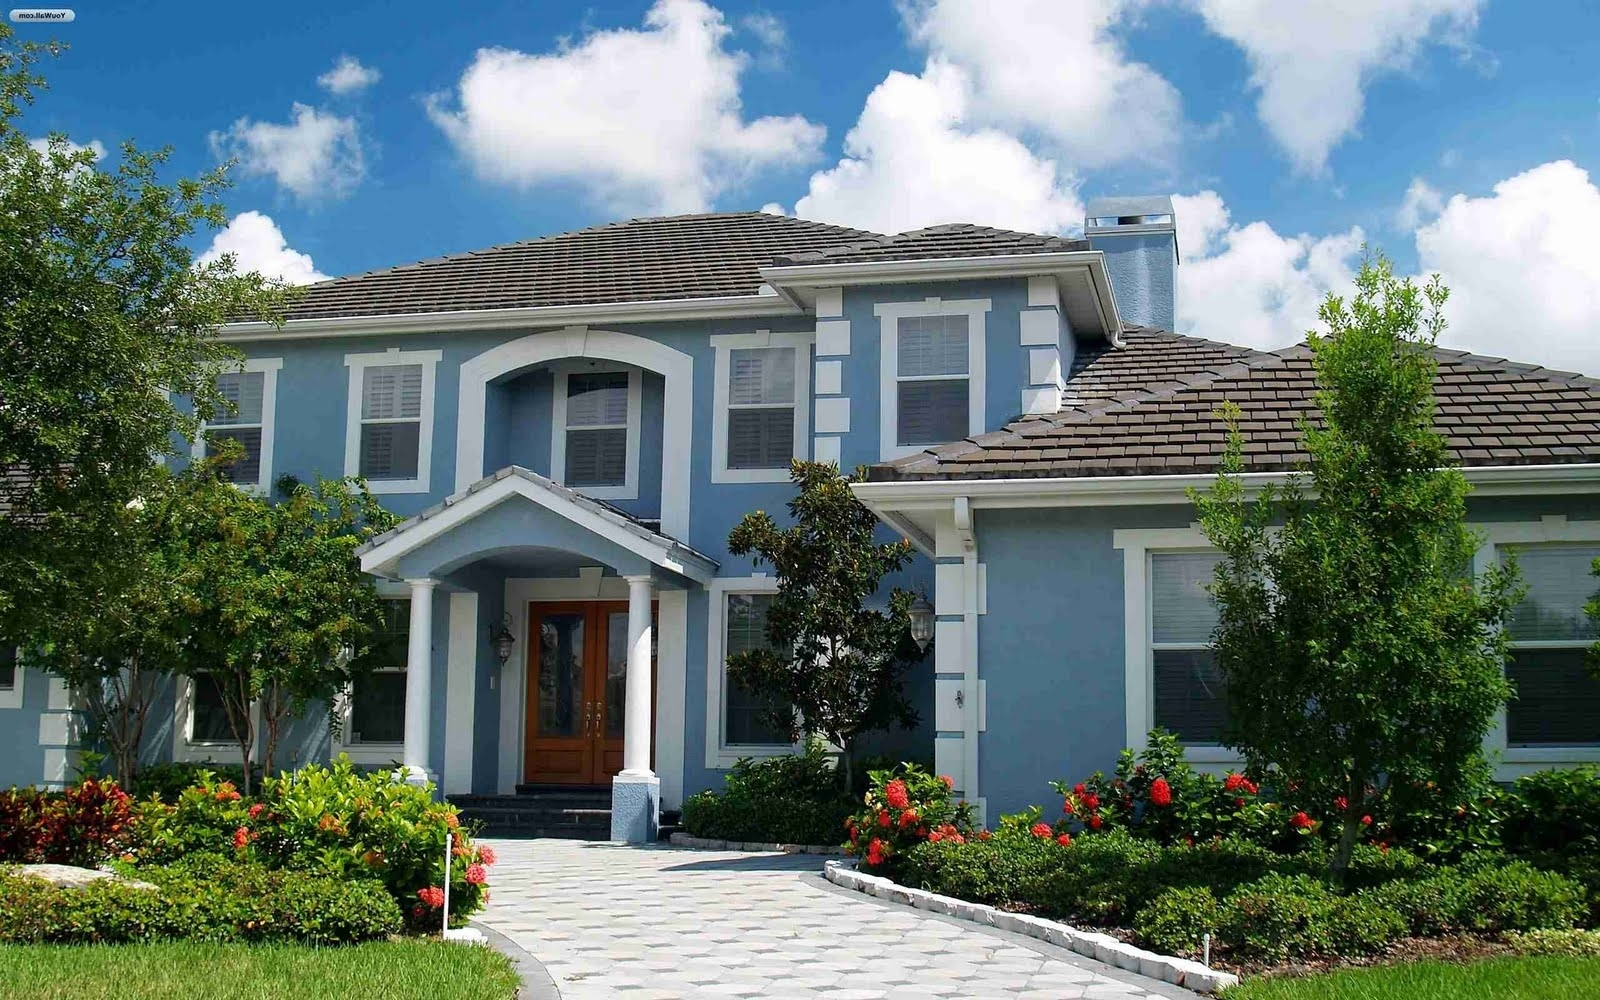 Gorgeous house exterior paint colors ideas 554 exterior ideas for Blue grey exterior house paint